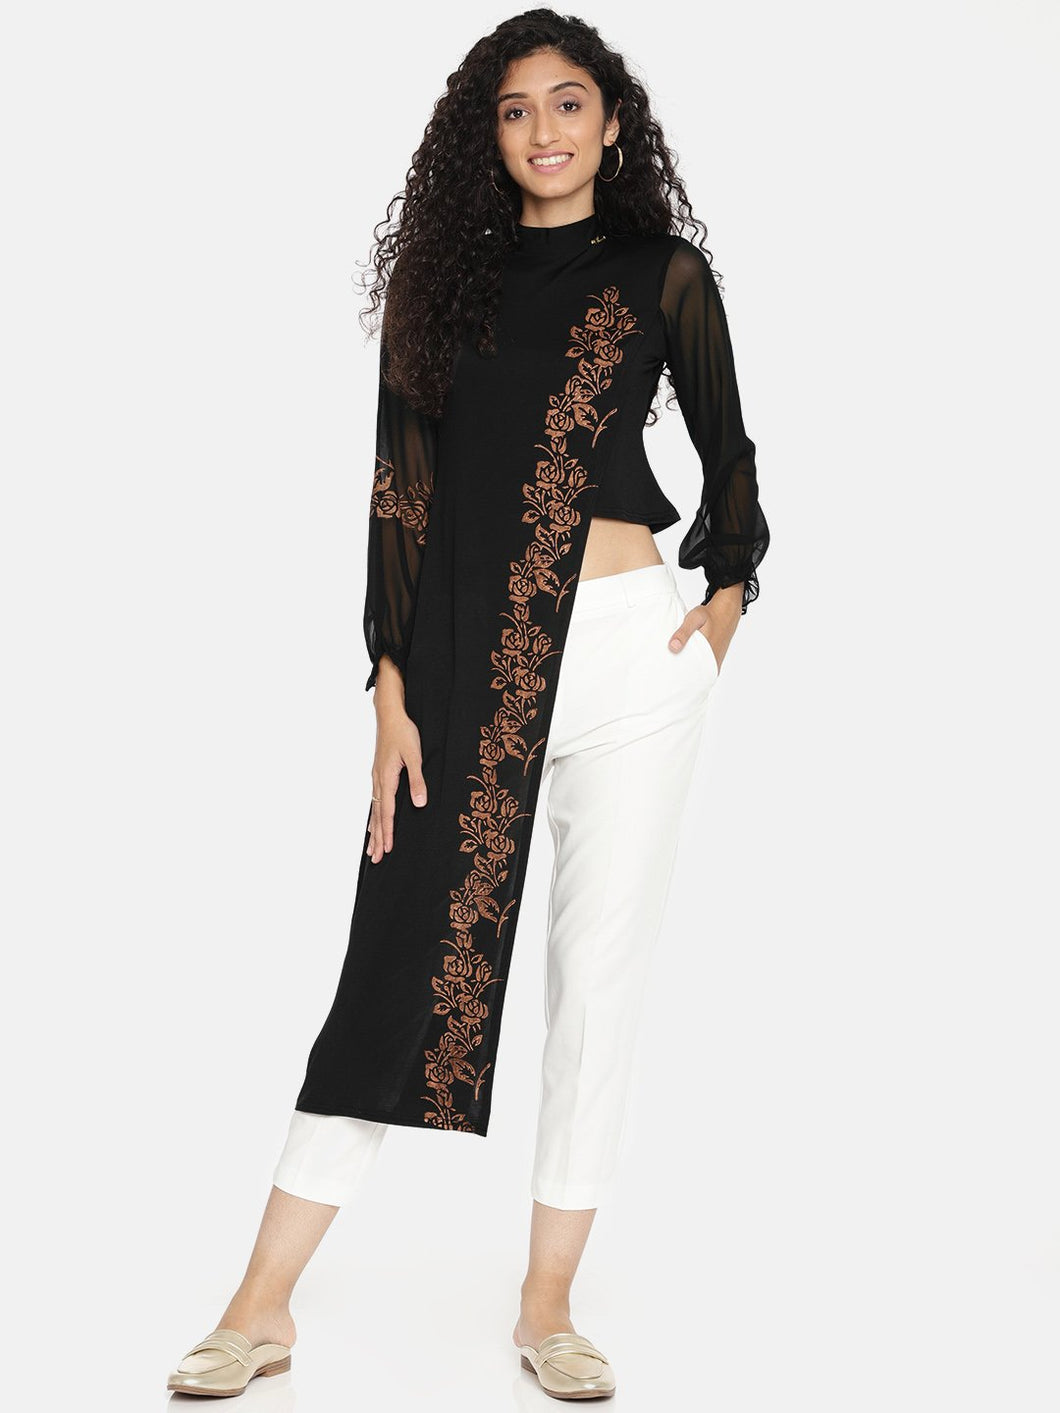 LONG FRONT SHORT BACK KURTI WITH PUFF LONG SLEEVES